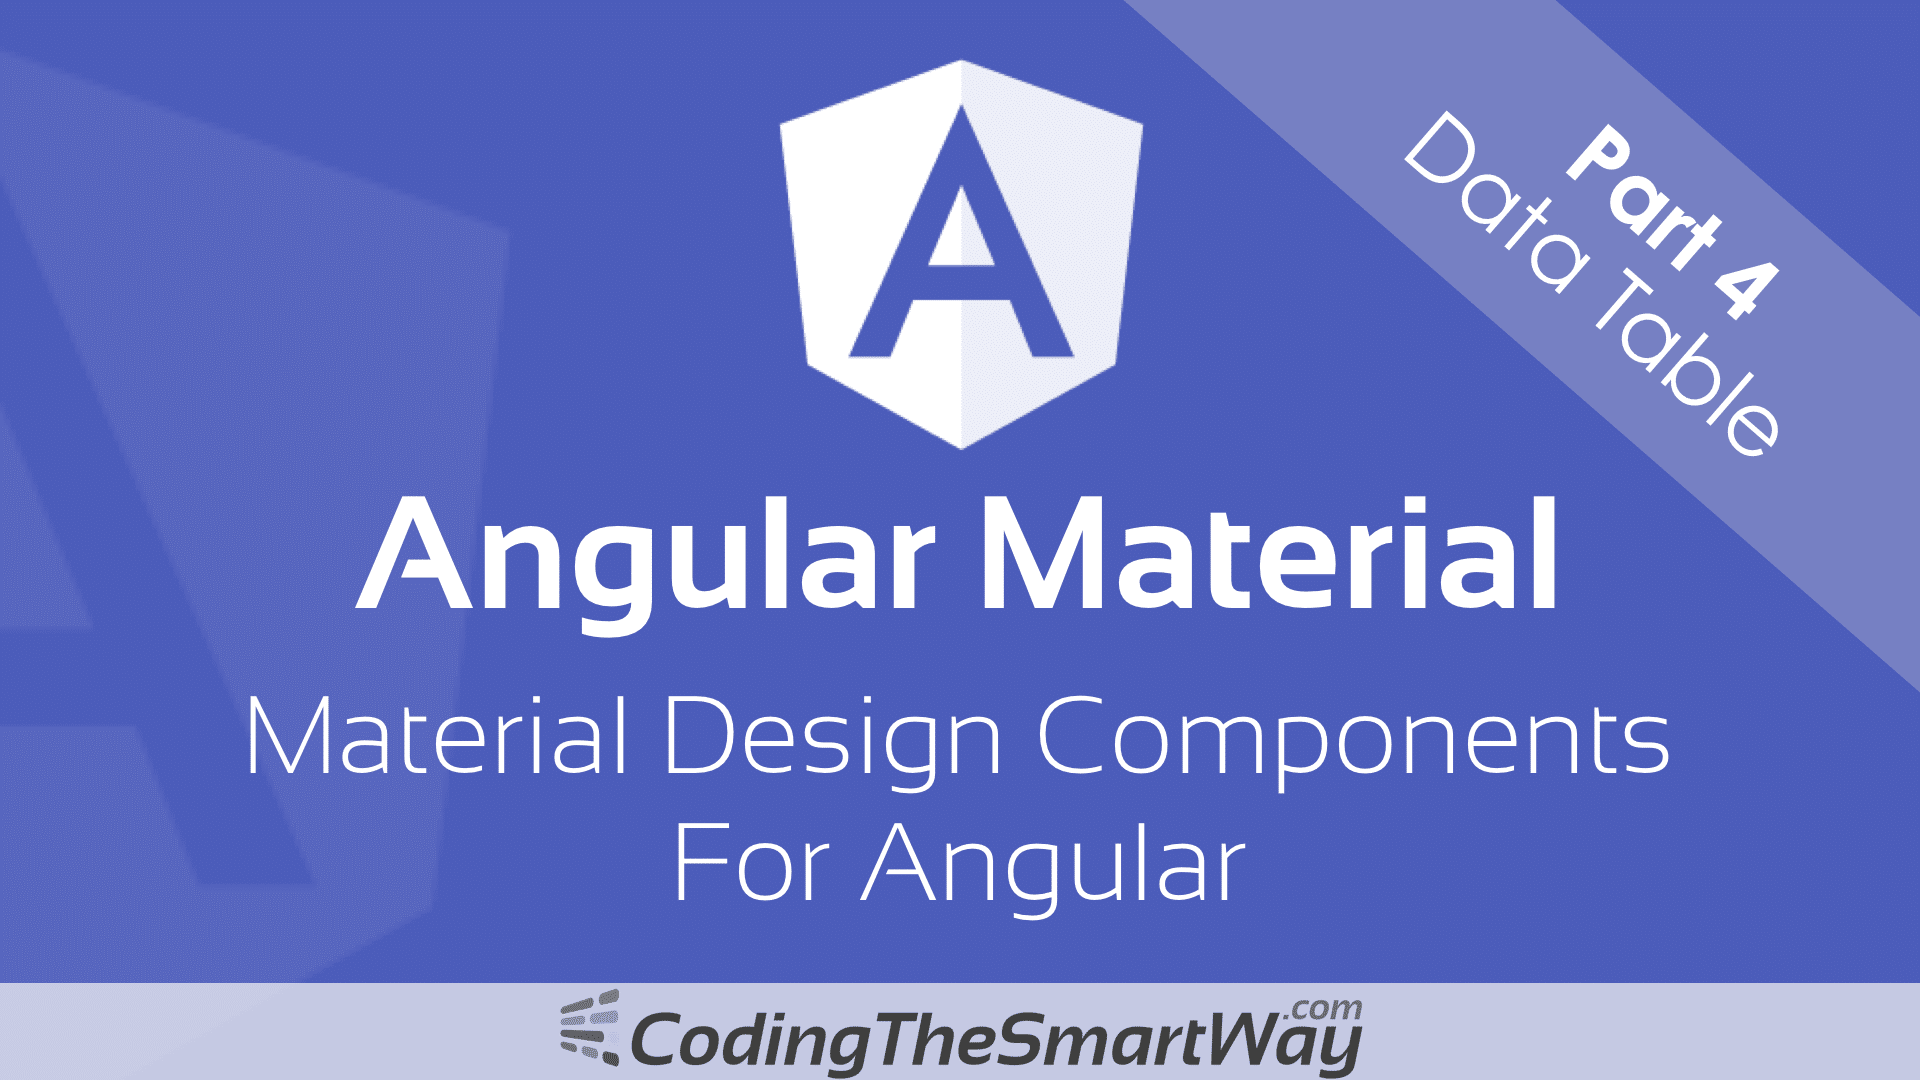 Angular Material - Part 4: Data Table - CodingTheSmartWay com